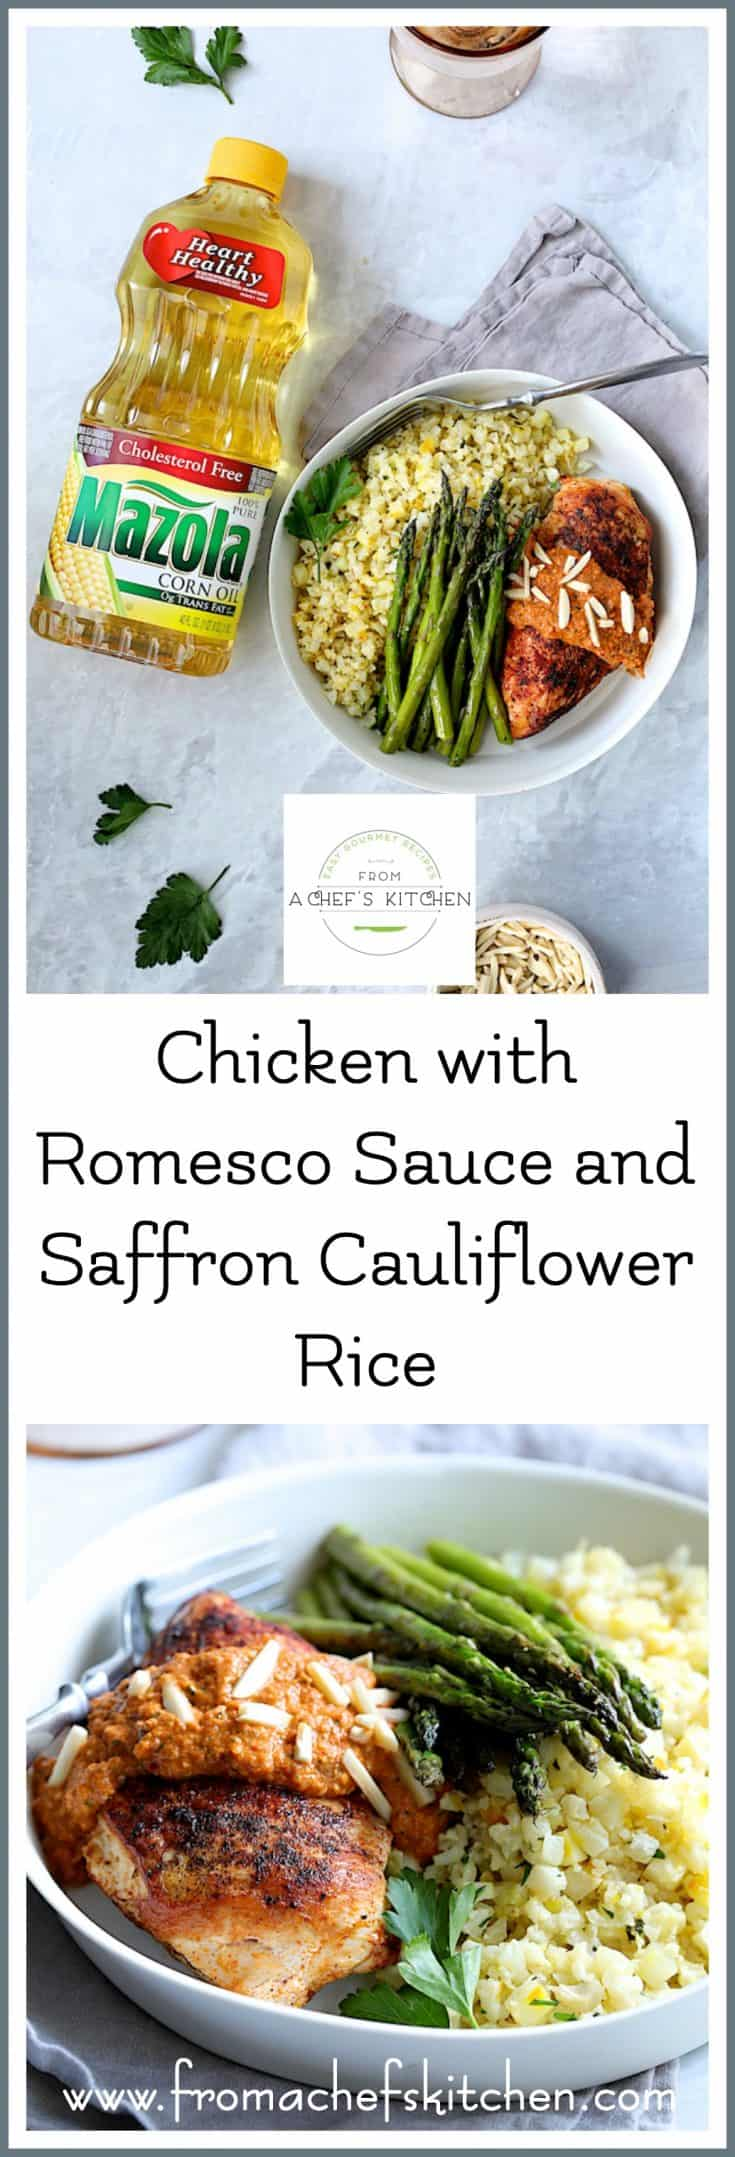 #AD #Sponsored - Chicken with Romesco Sauce and Saffron Cauliflower Rice, made with Mazola Corn Oil is a Spanish-inspired restaurant-quality dish that's easy enough for a weeknight and elegant enough for your next dinner party! @Mazola #MazolaHeartHealth #CollectiveBias #chicken #chickenrecipes #easychickenrecipes #Spanish #Spanishrecipes